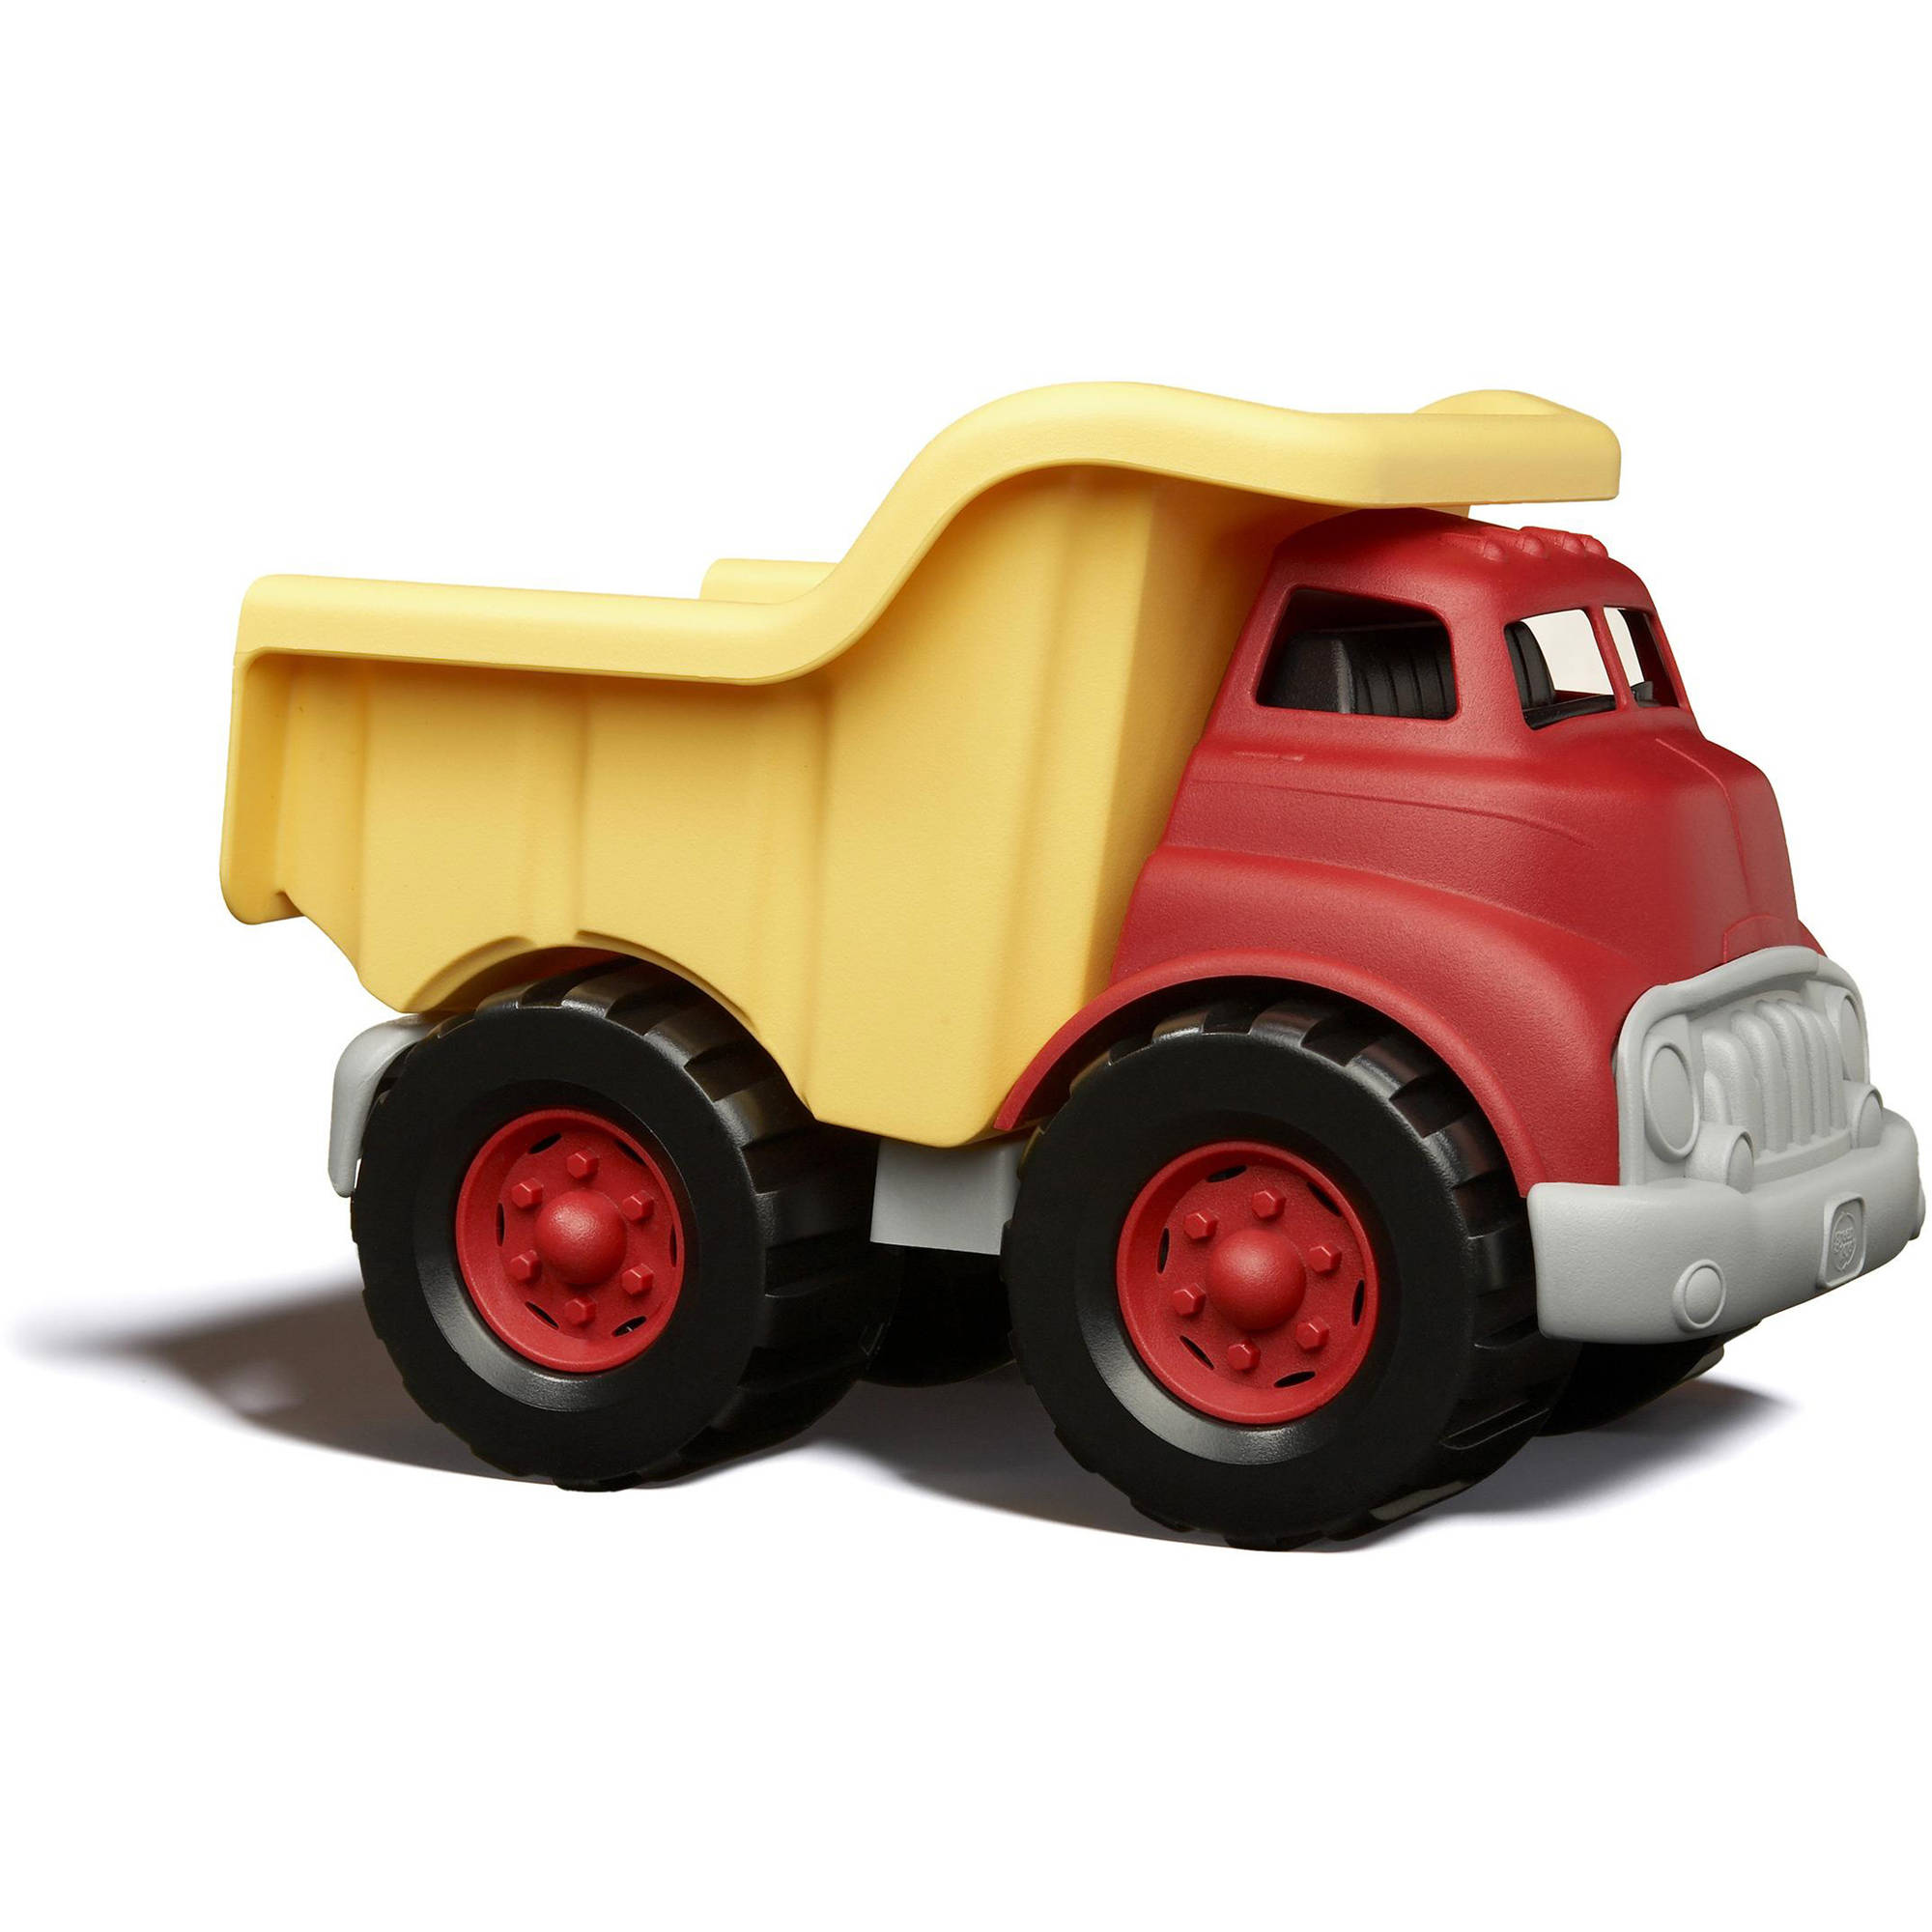 Green Toys Dump Truck by Green Toys Inc